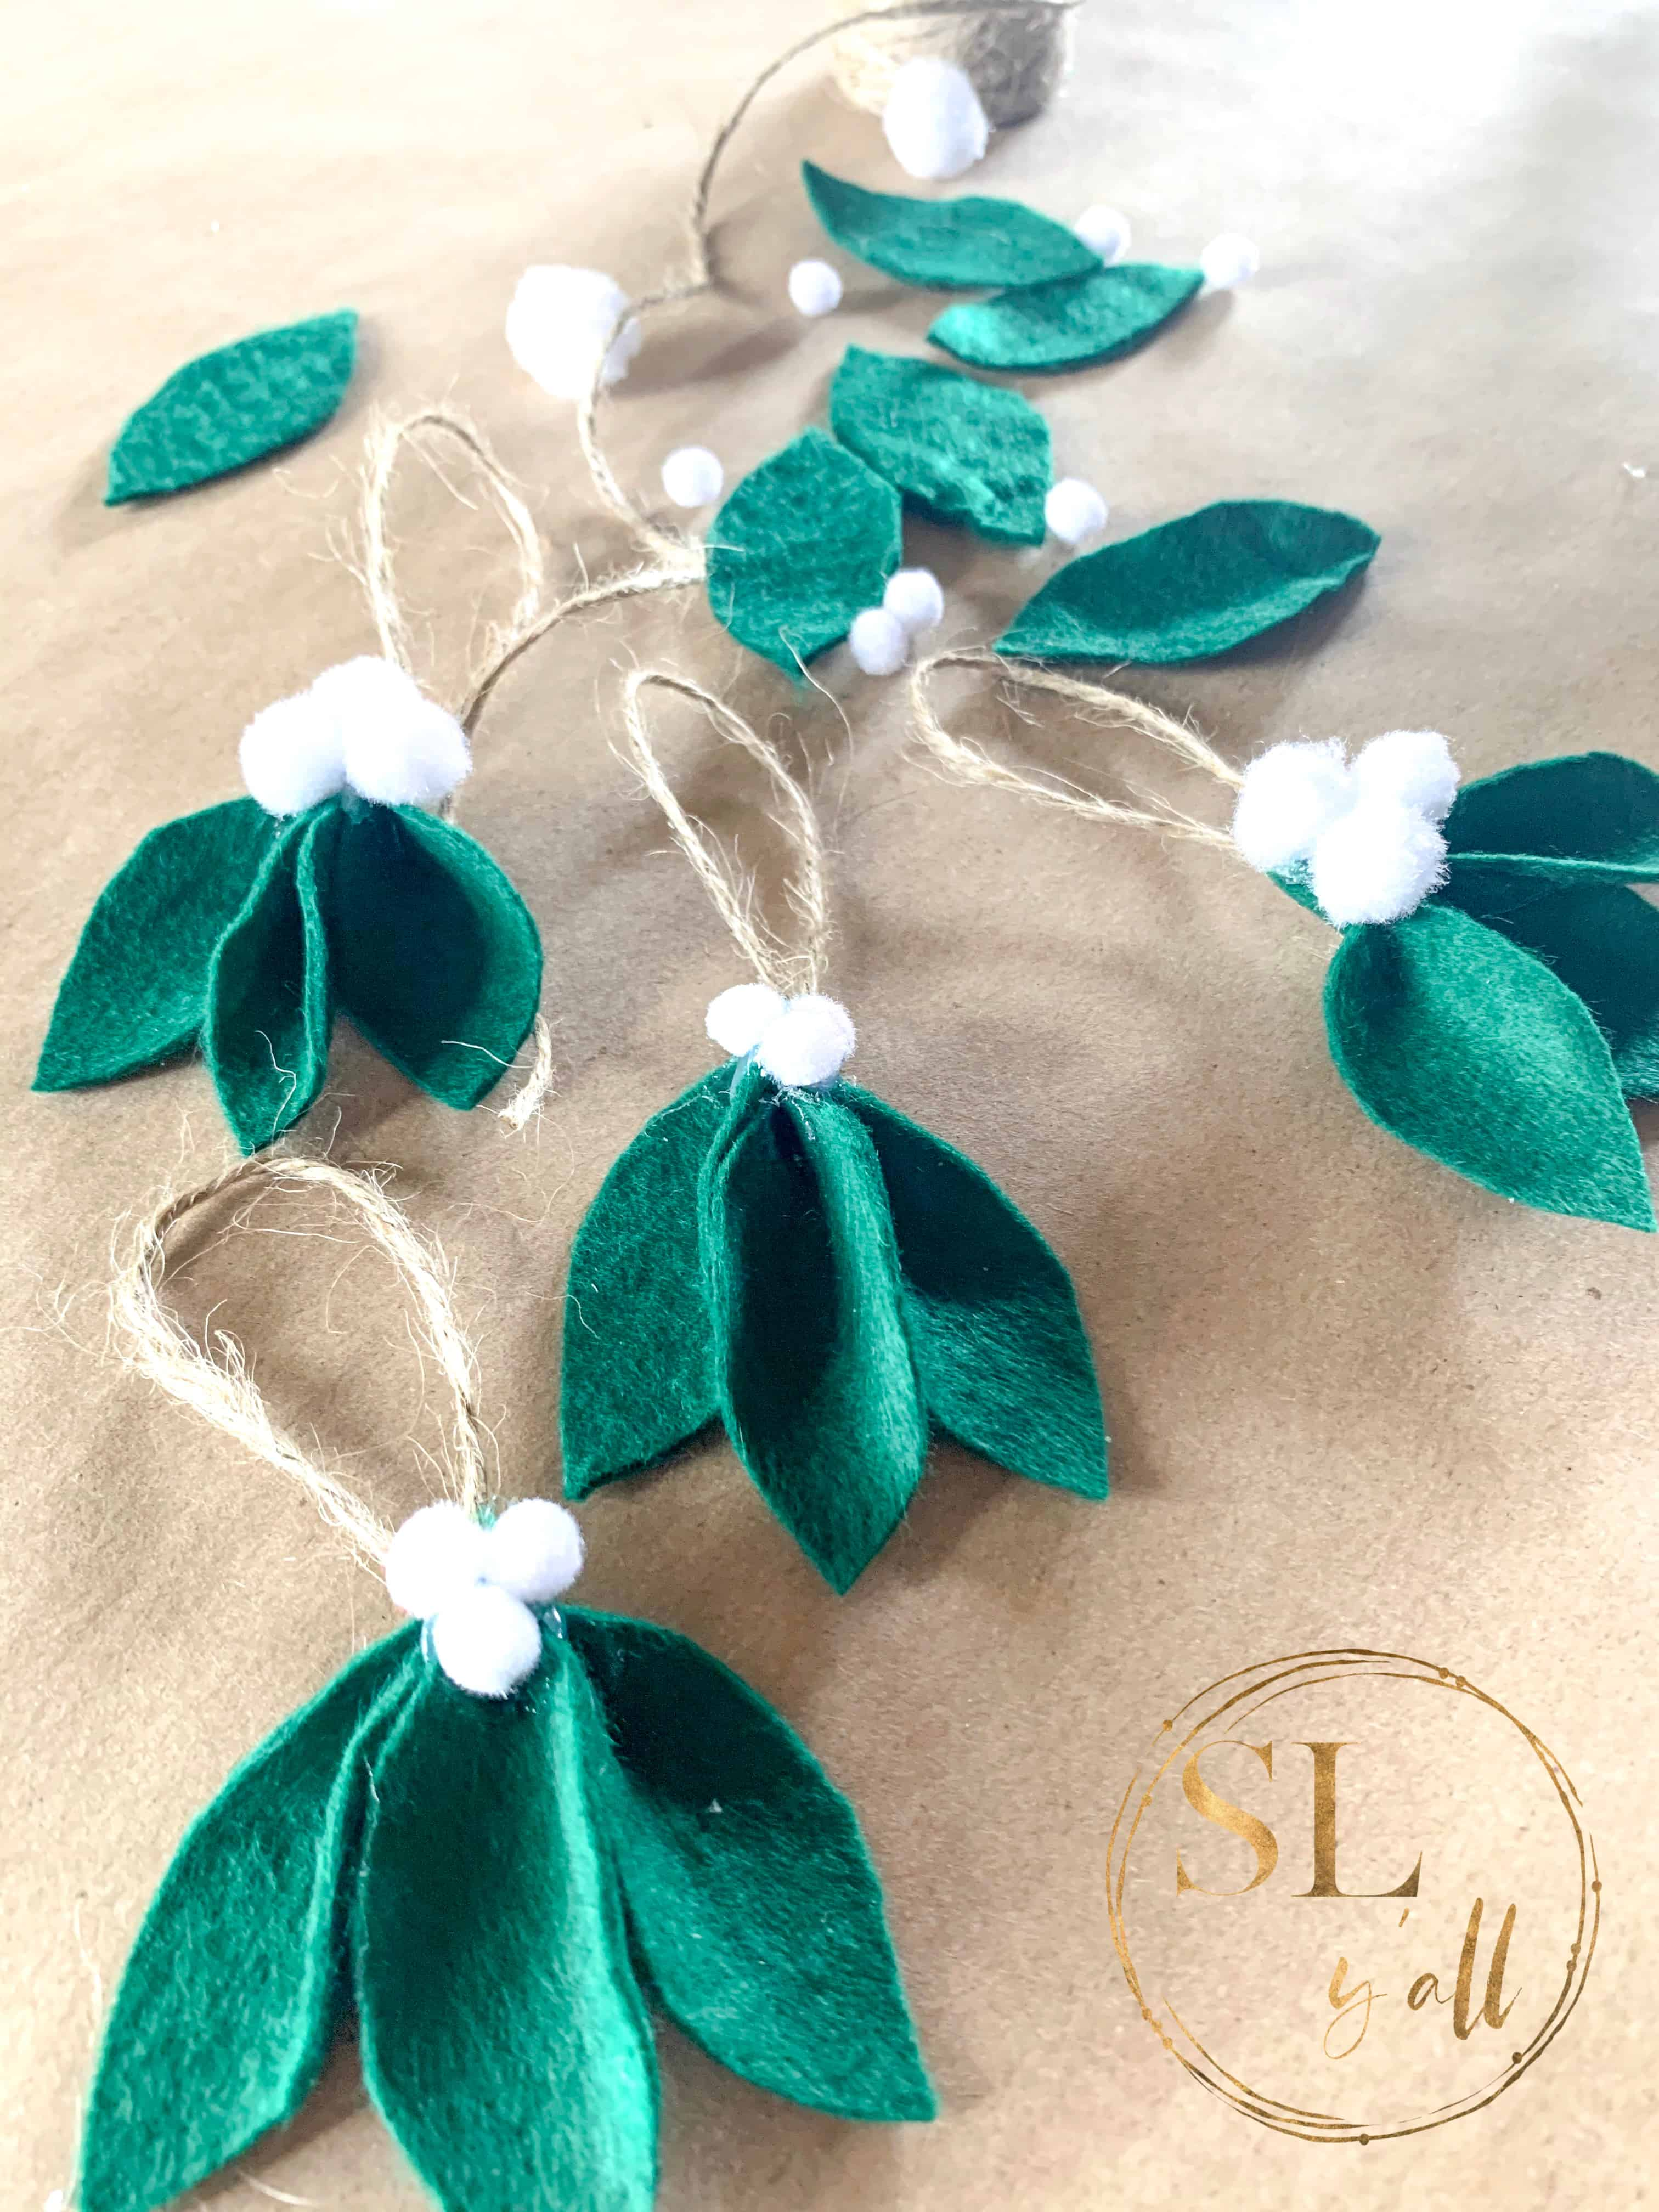 Farmhouse Felt Leaf Ornaments completed